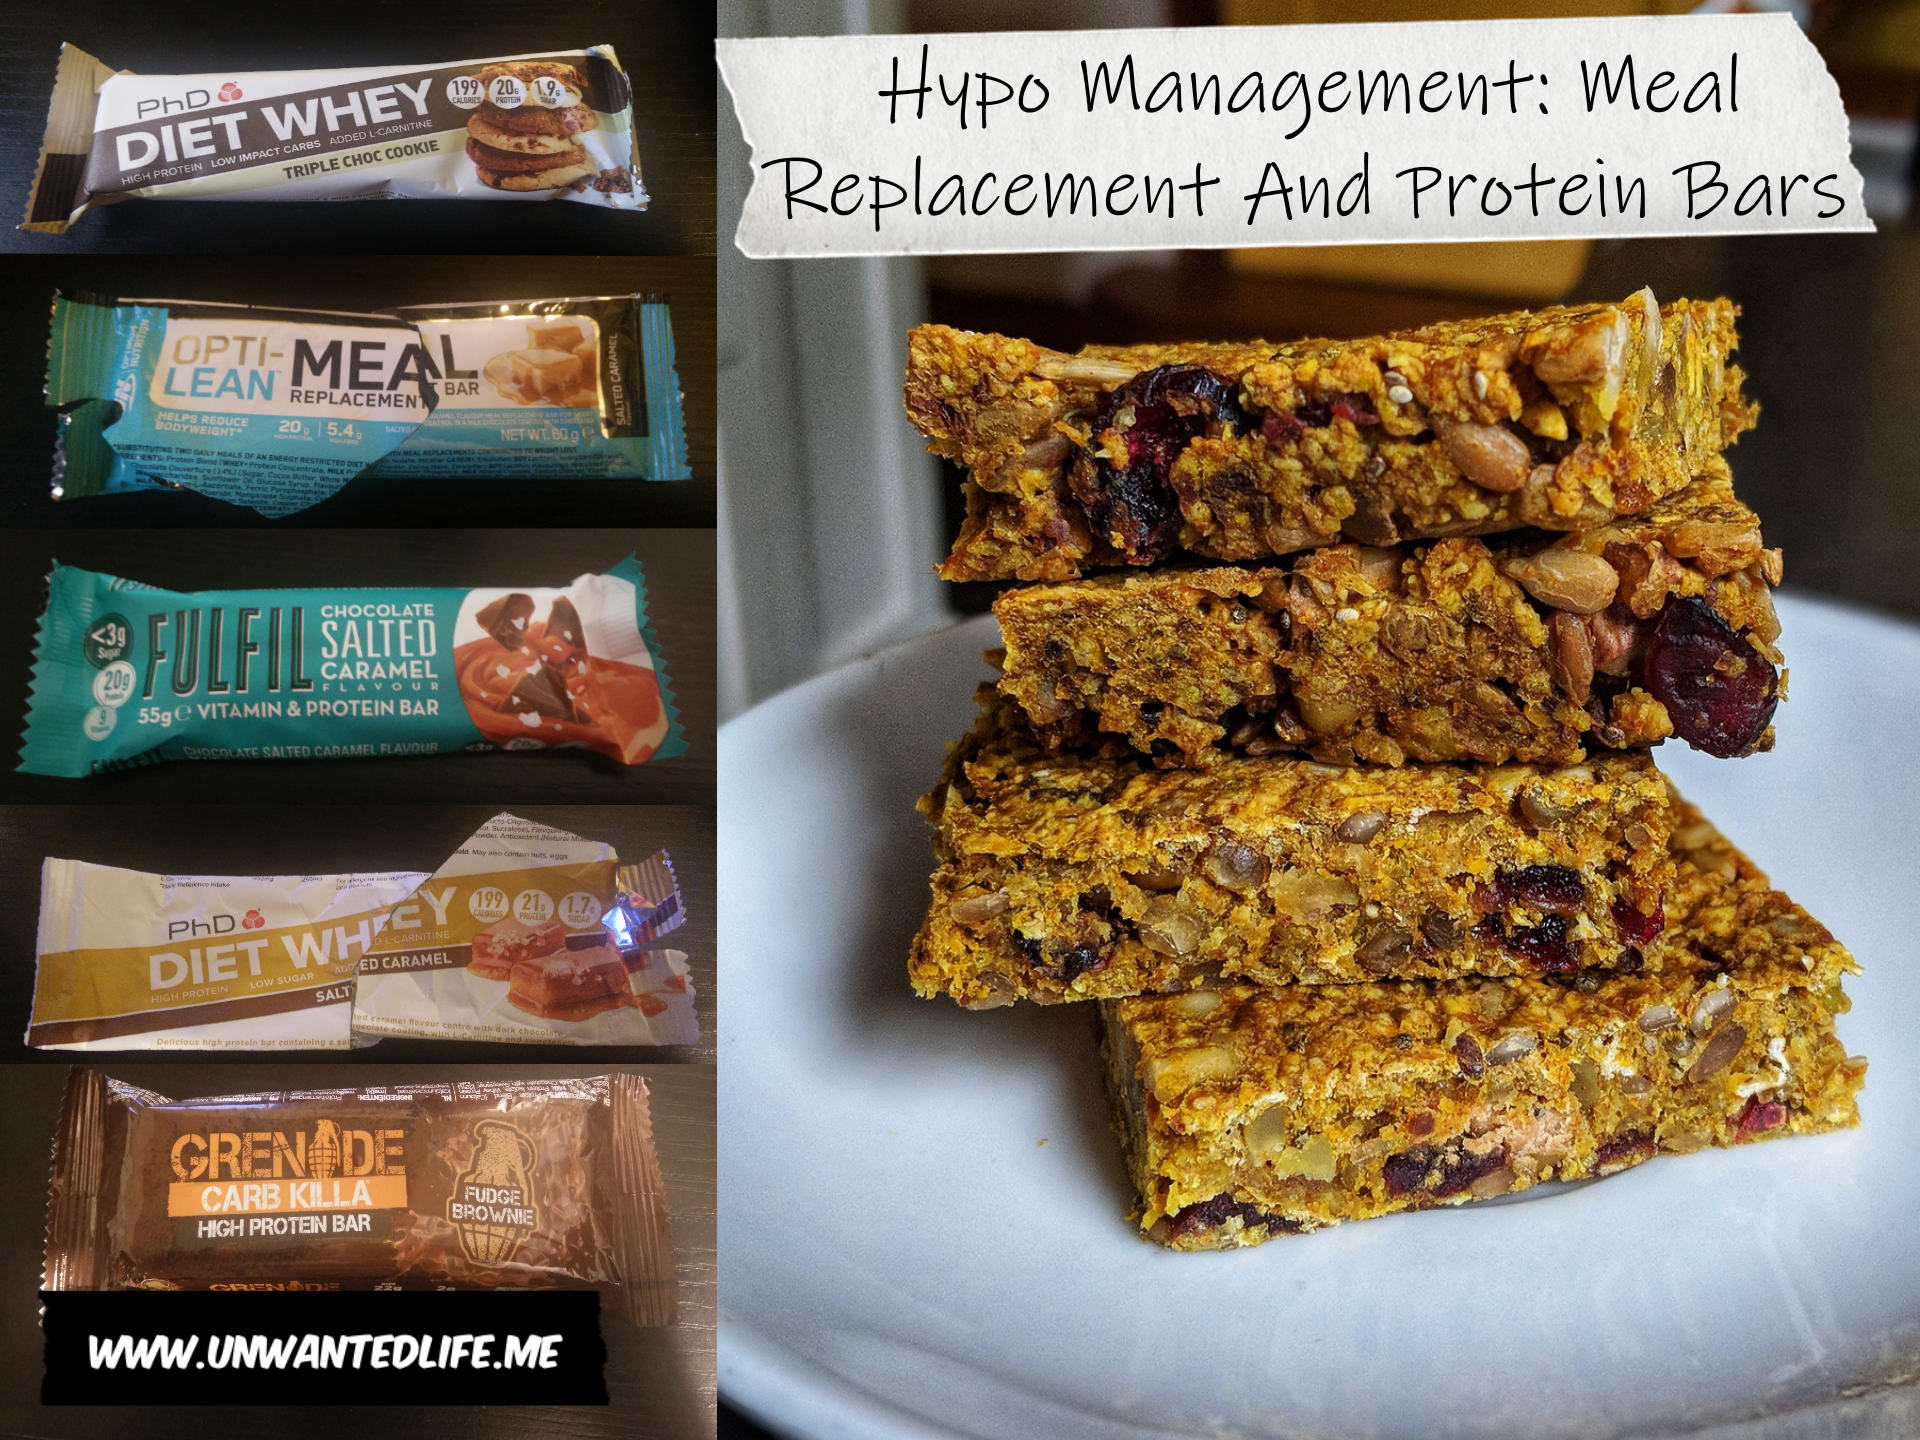 The image is split into two main half's, the first half is of photo's of five different meal replacement and protein bars. The second half is of a pile of homemade nut and fruit bars with both halves representing - Hypo Management: Meal Replacement And Protein Bars